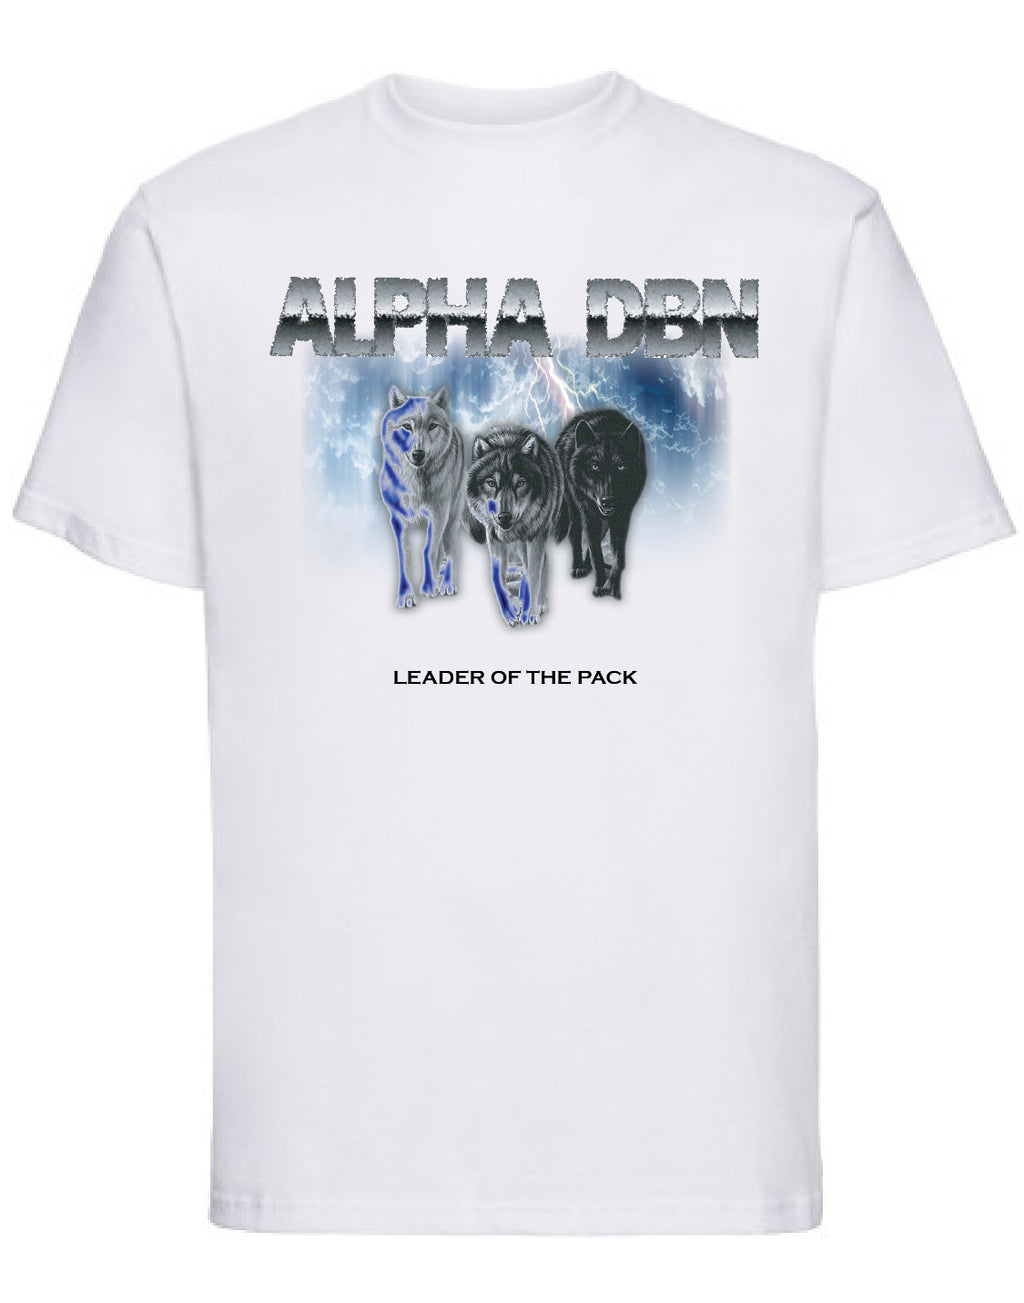 Alpha DBN LEADER OF THE PACK - White T-shirt